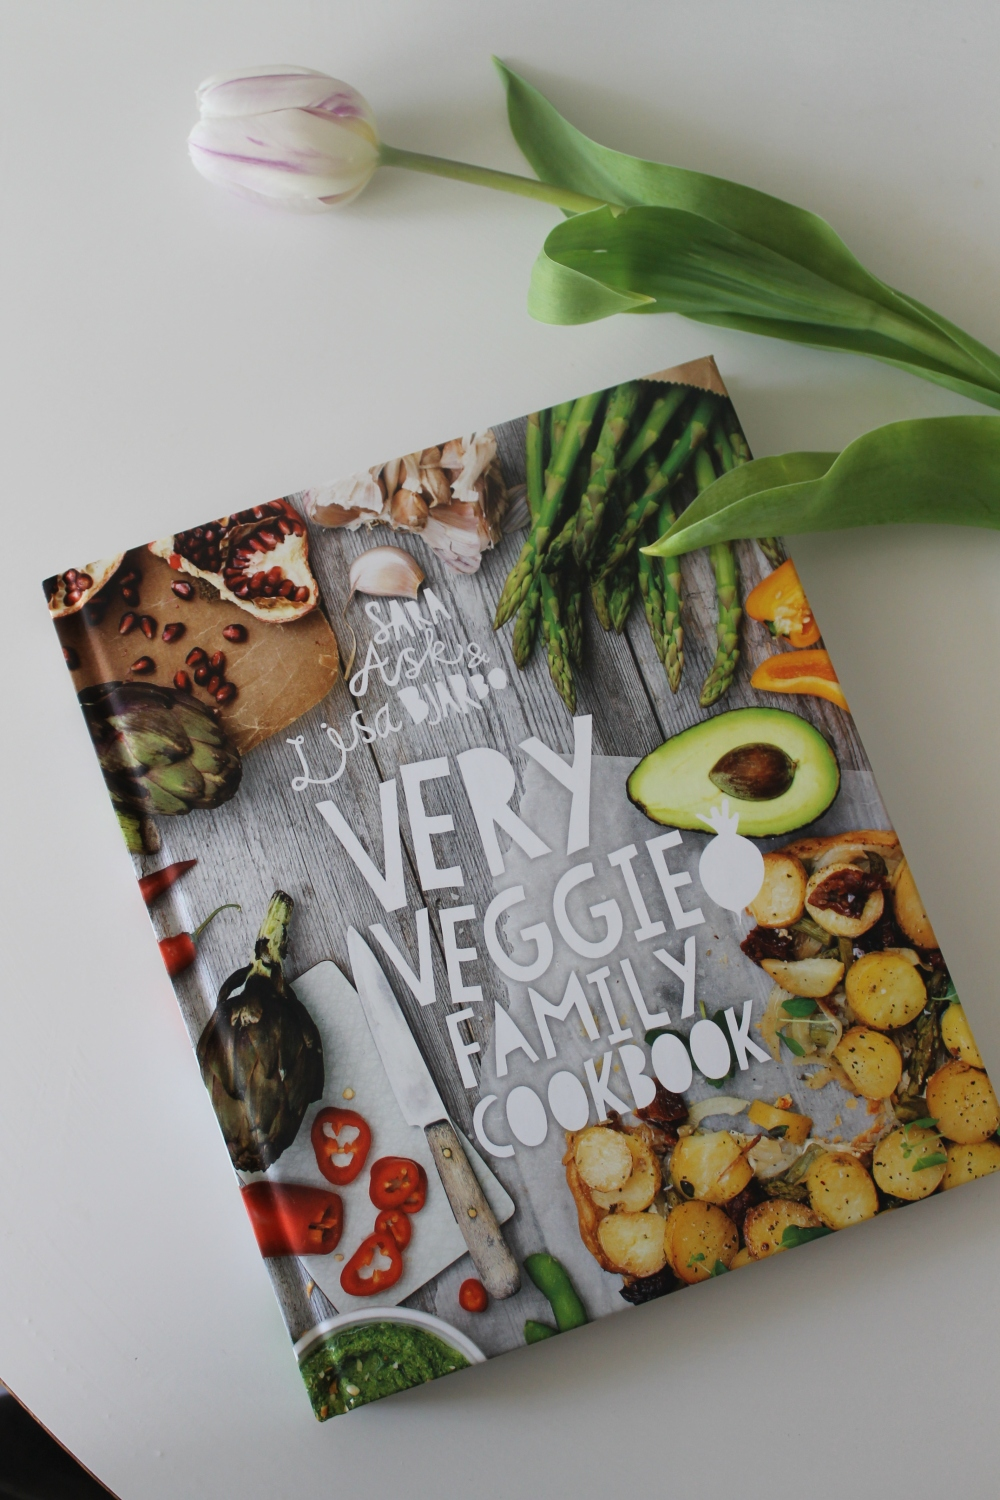 Very Veggie Famile Cookbook_ reviewed by healthyfoodiebaby